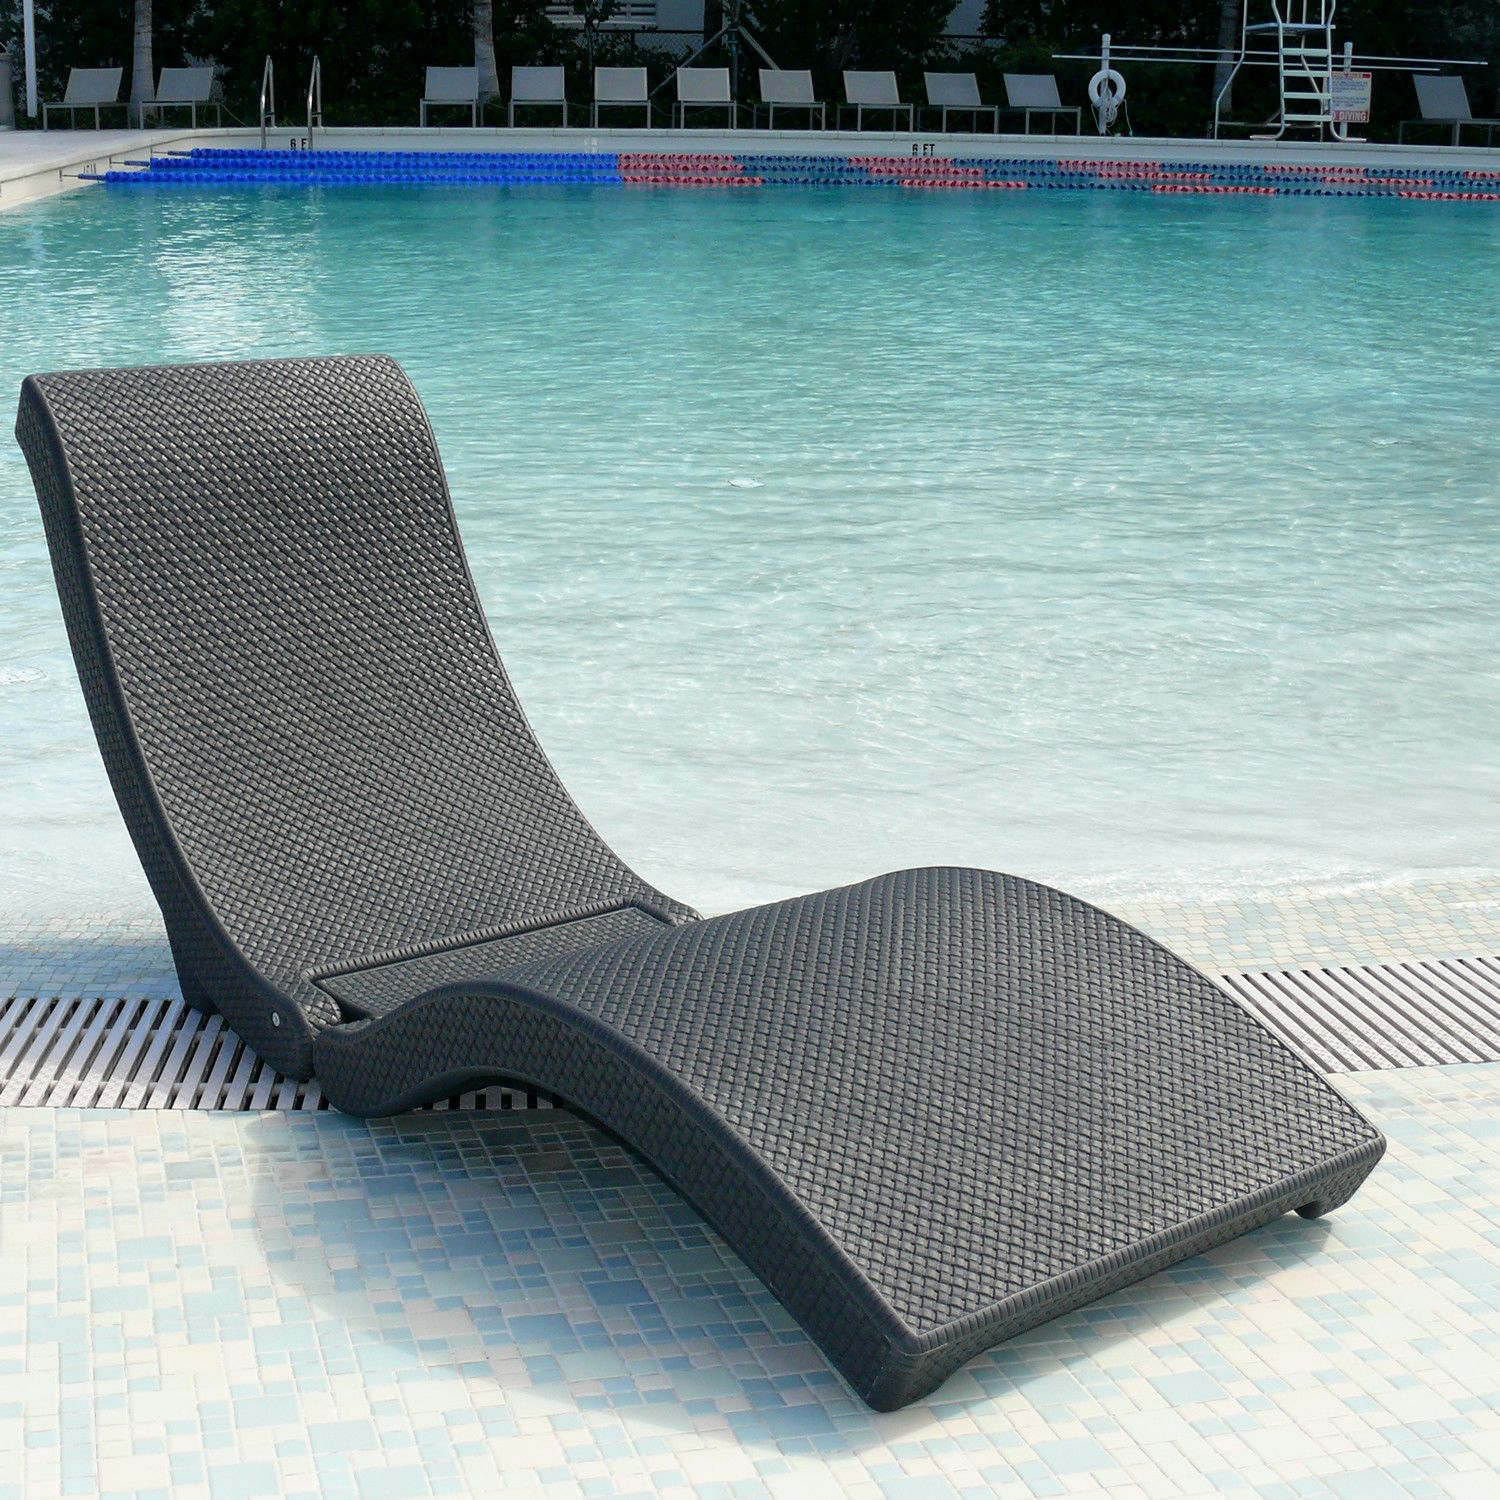 Miraculous Water In Pool Chaise Lounge Chairs In 2019 Pool Lounge Ibusinesslaw Wood Chair Design Ideas Ibusinesslaworg